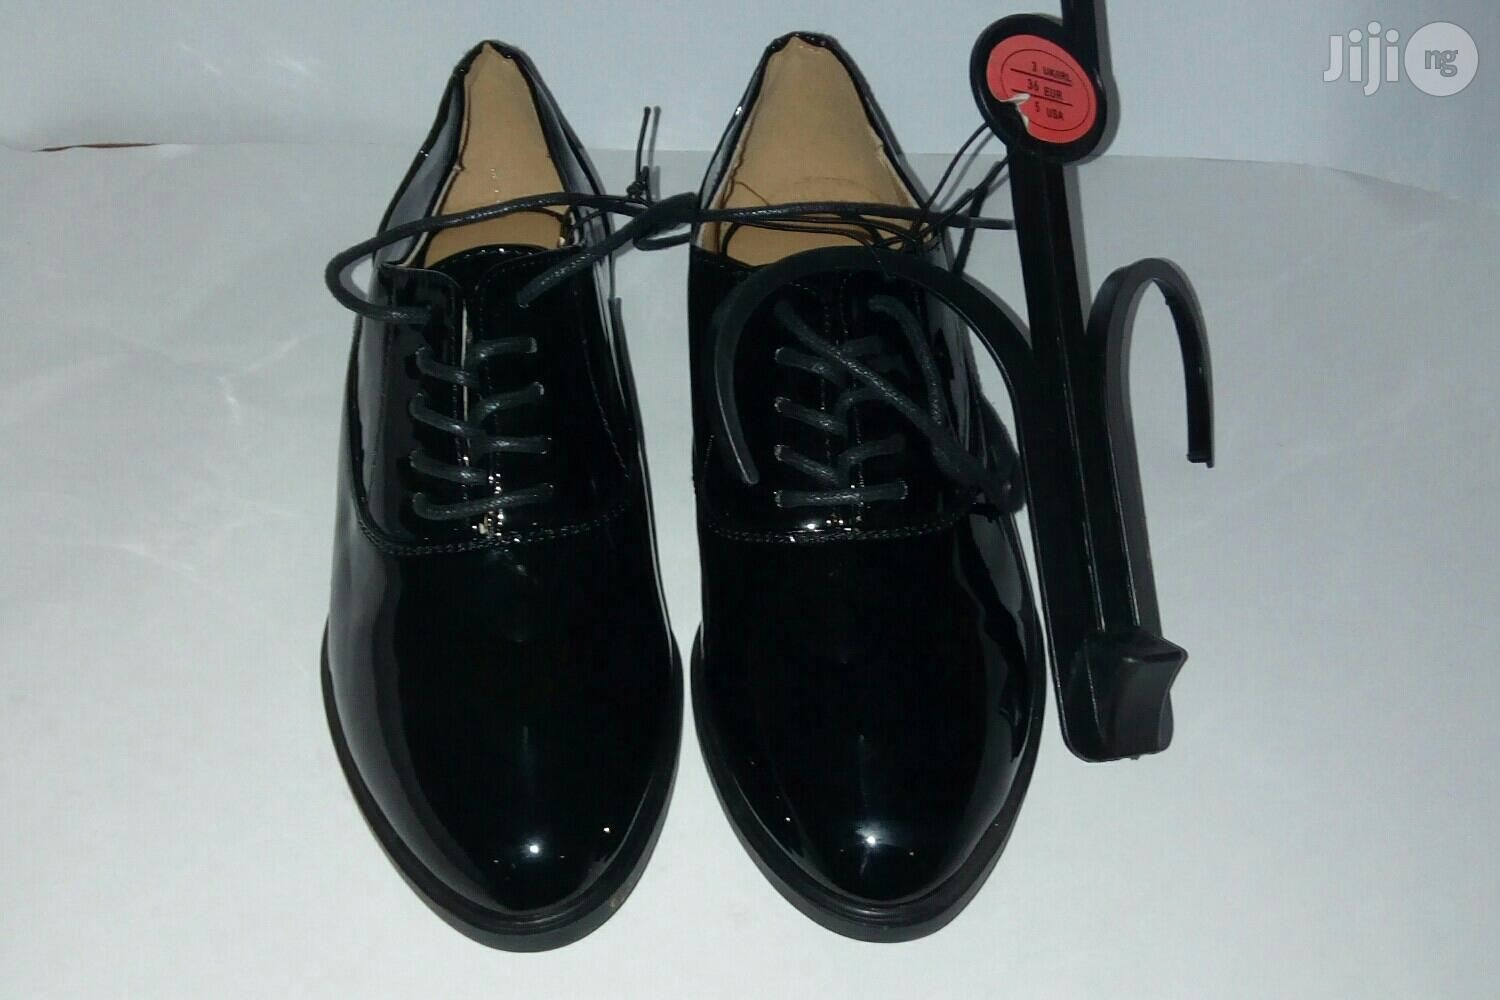 Archive: Atmosphere Black Glossy Leather Shoe for Boys